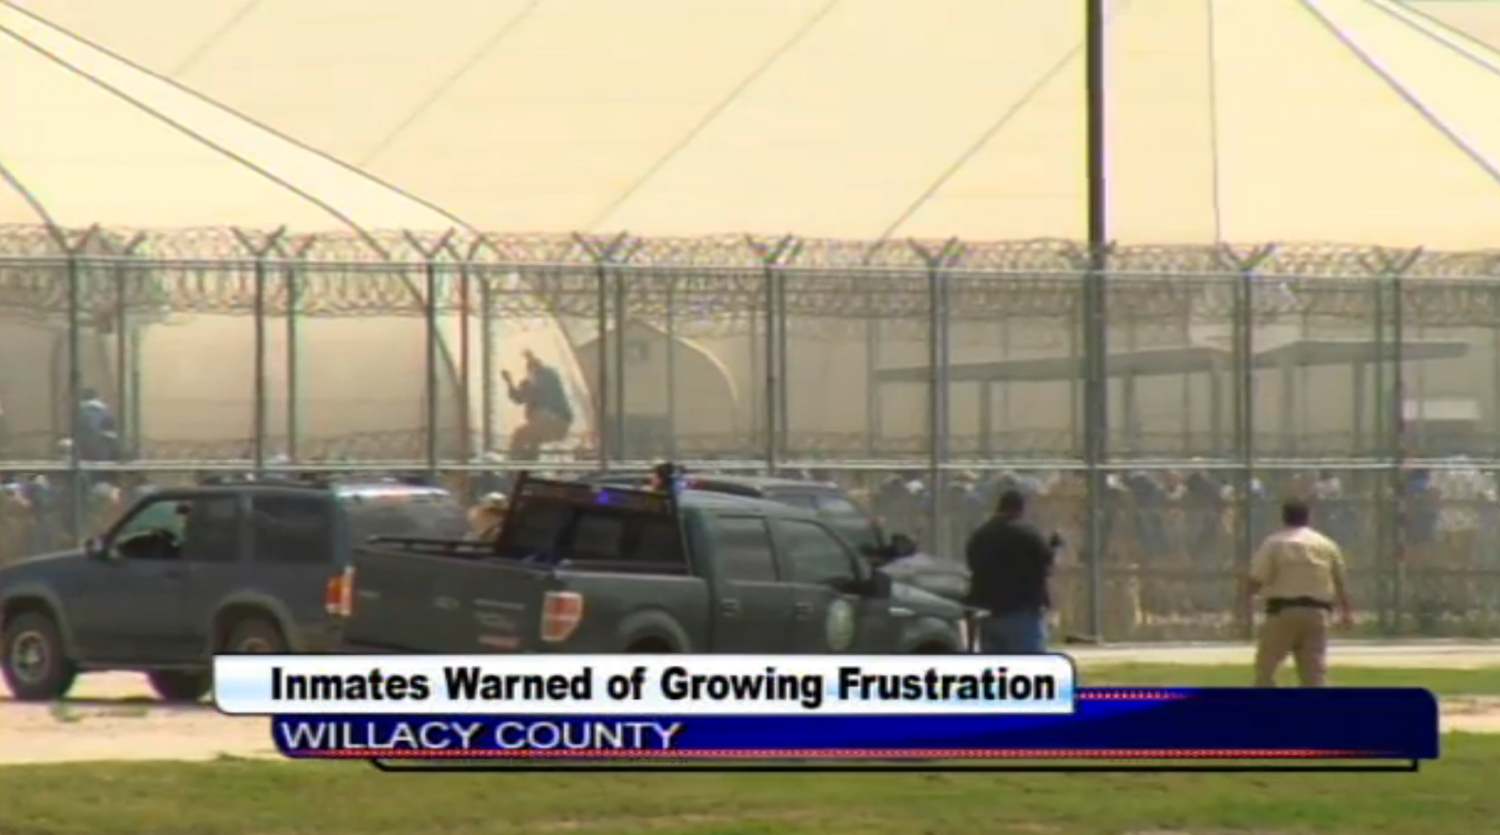 A-2-Day-Revolt-at-a-Texas-Private-Prison-Reveals-Everything-That's-Wrong-with-Criminalizing-Immigration